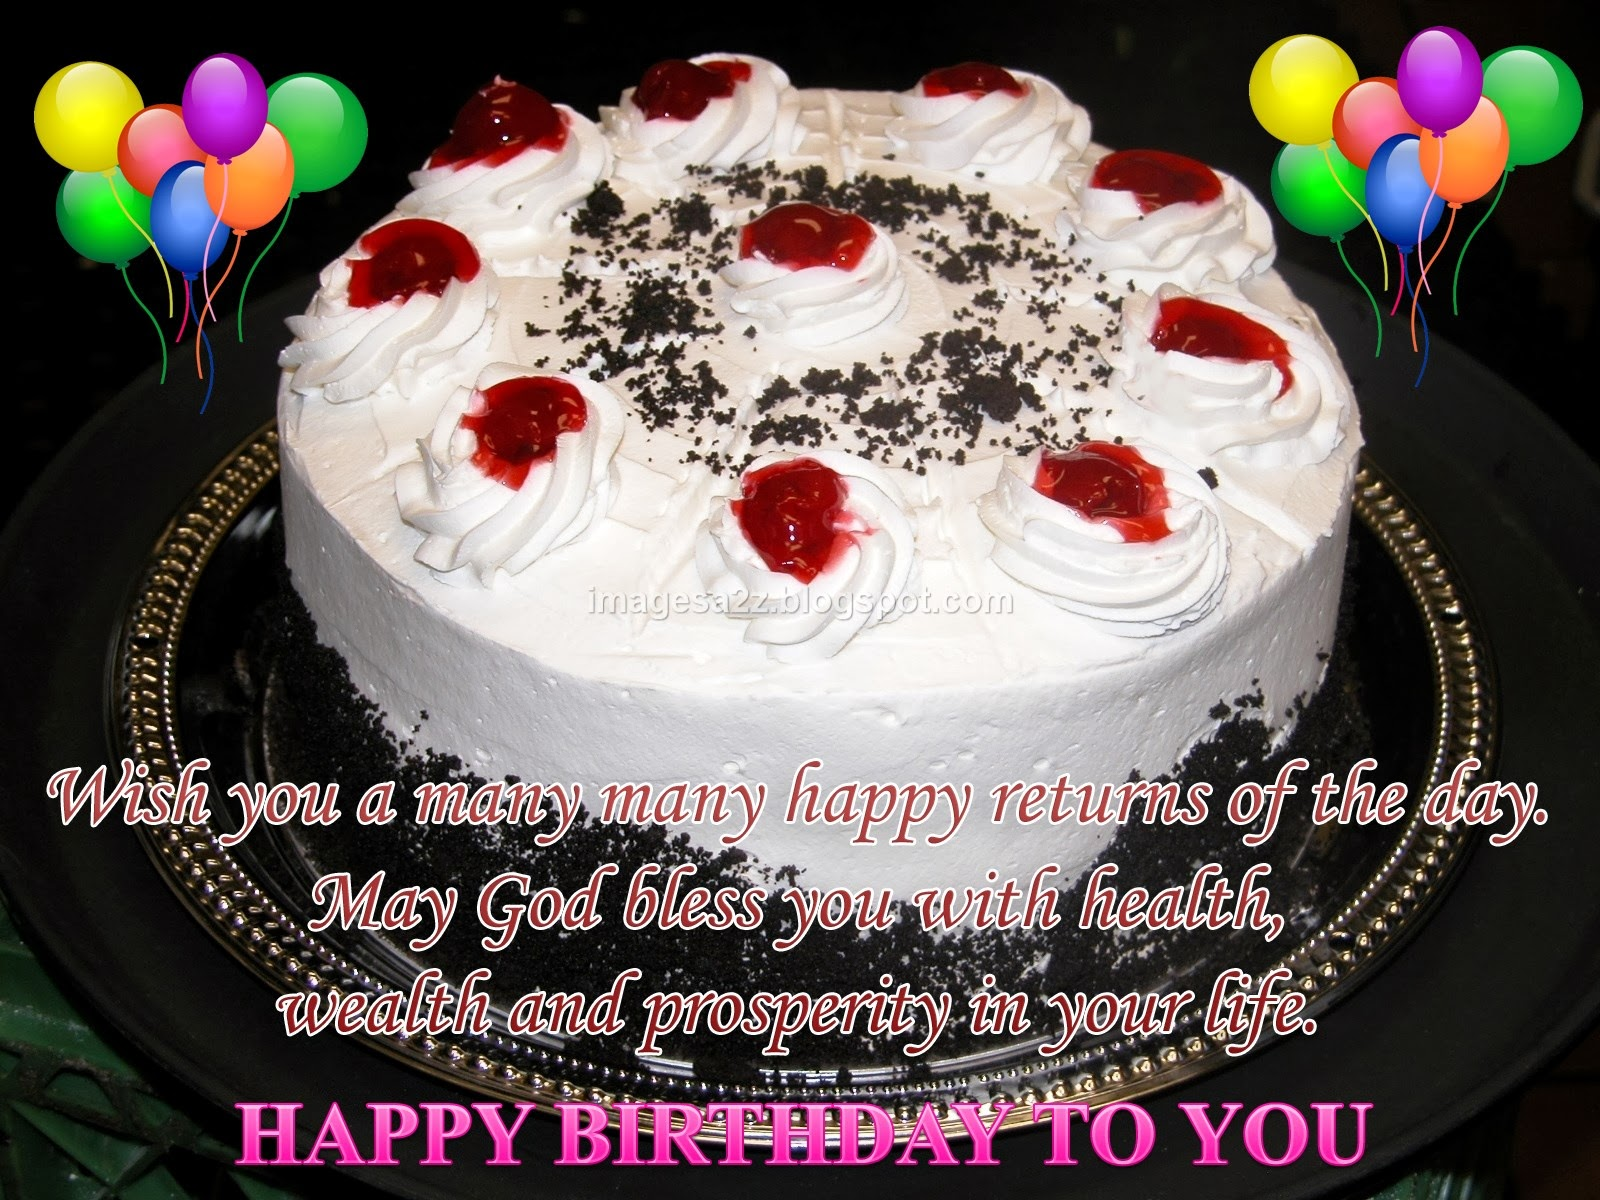 Cake Images For Birthday Wishes : birthday wishes for friends 55 birthday wishes for friends images - happy-birthday-wishes-quotes ...